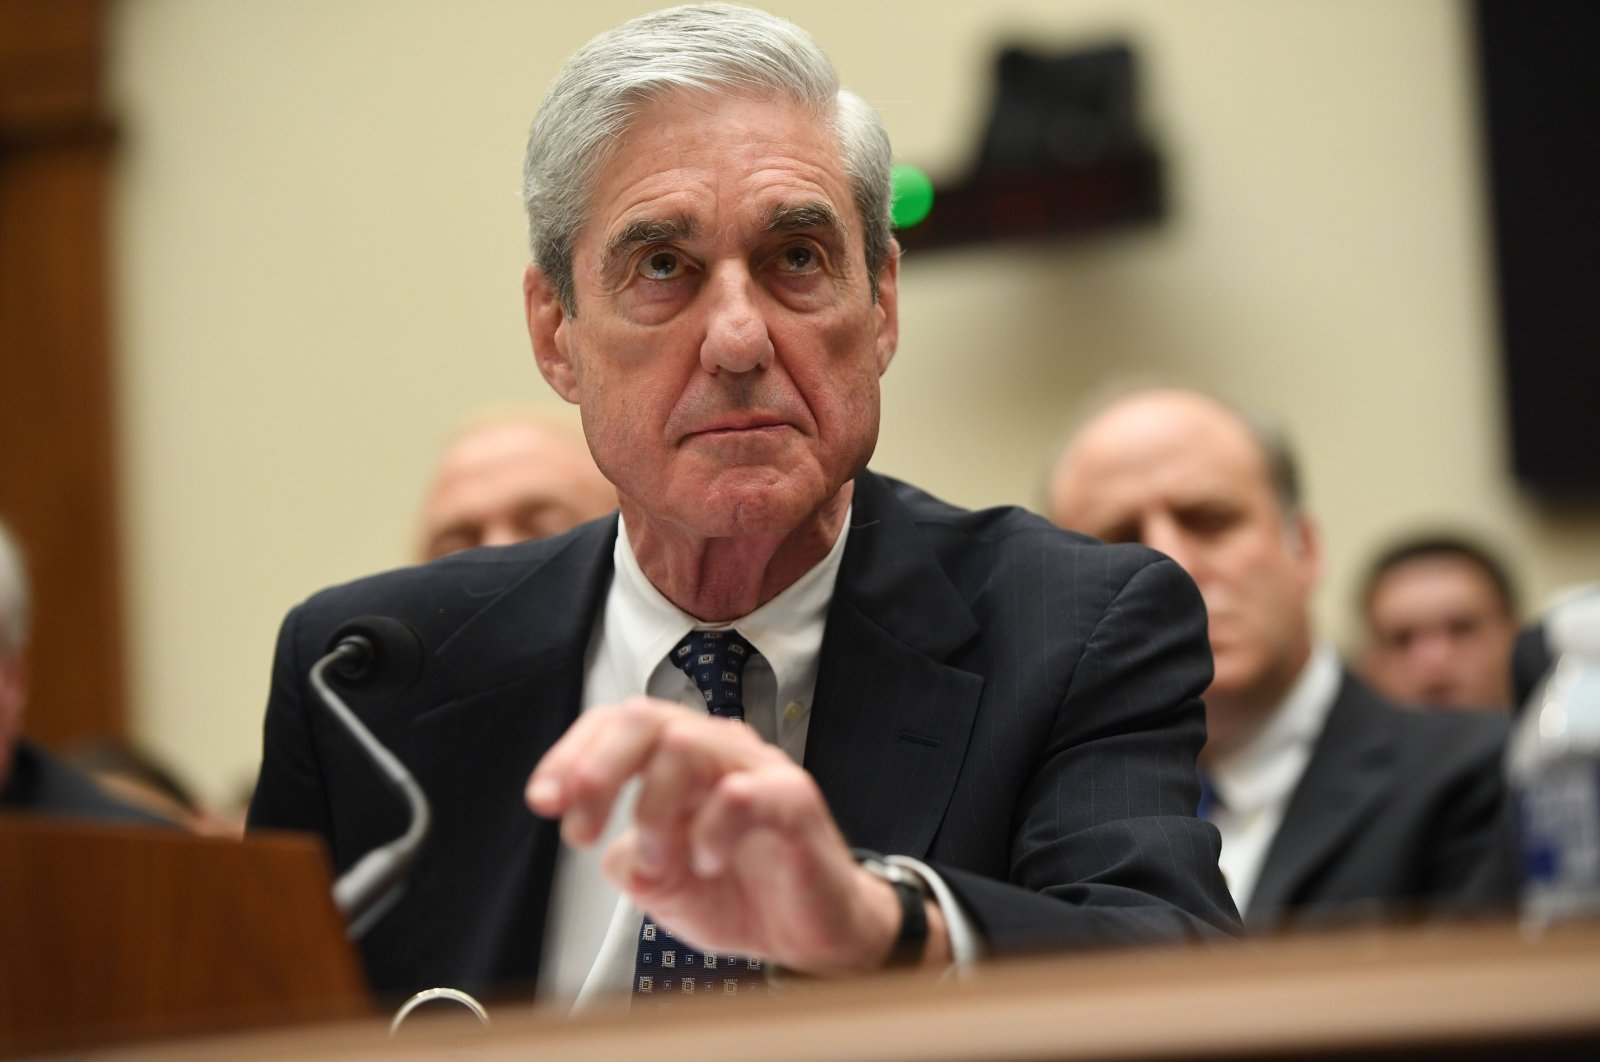 In this file photo, former Special Prosecutor Robert Mueller testifies before Congress in Washington, D.C., July 24, 2019. (AFP Photo)